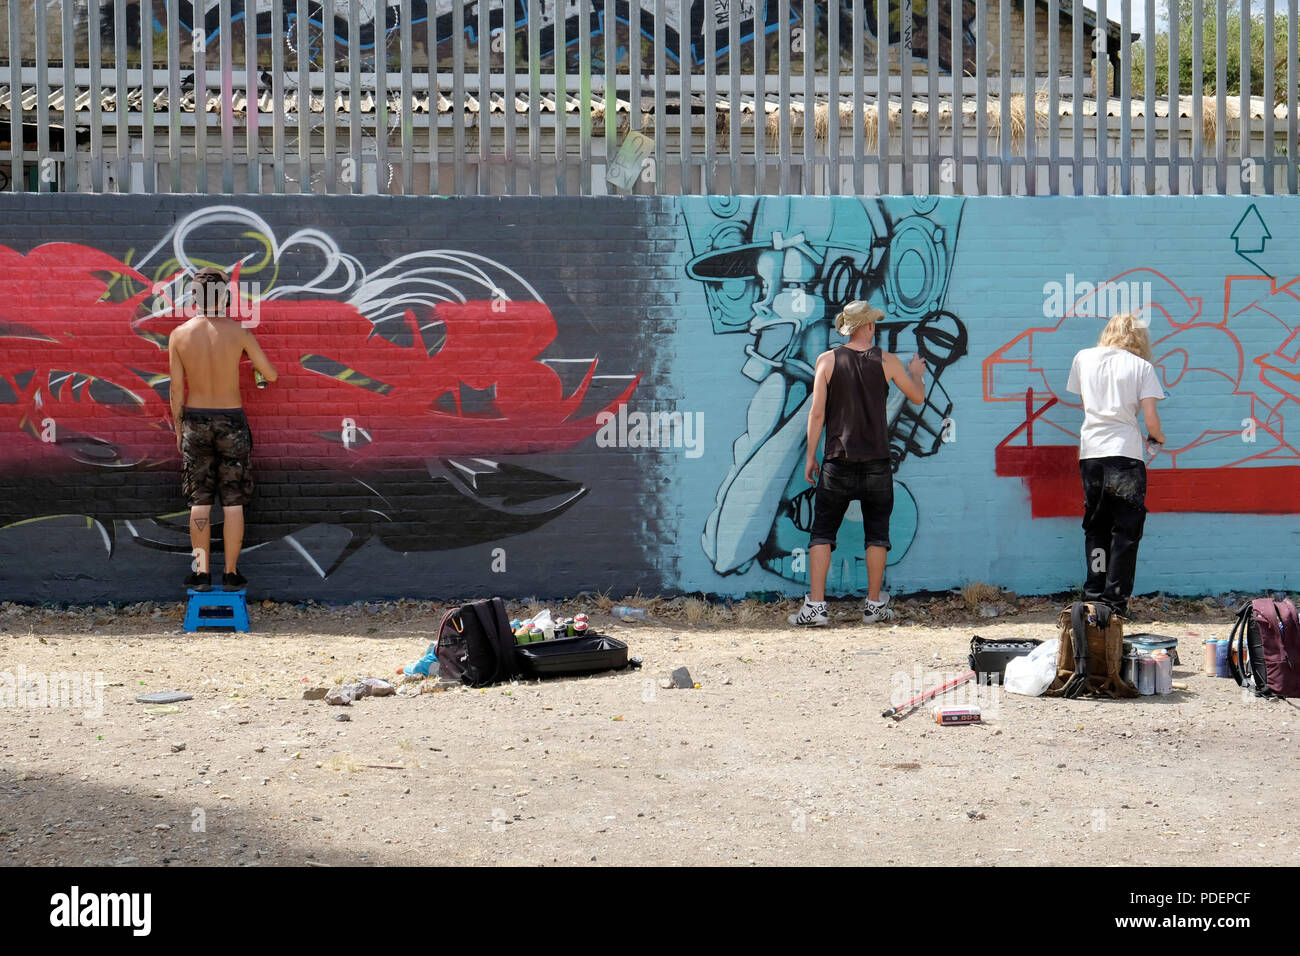 Three graffiti artists work on a mural in brick lane london stock image